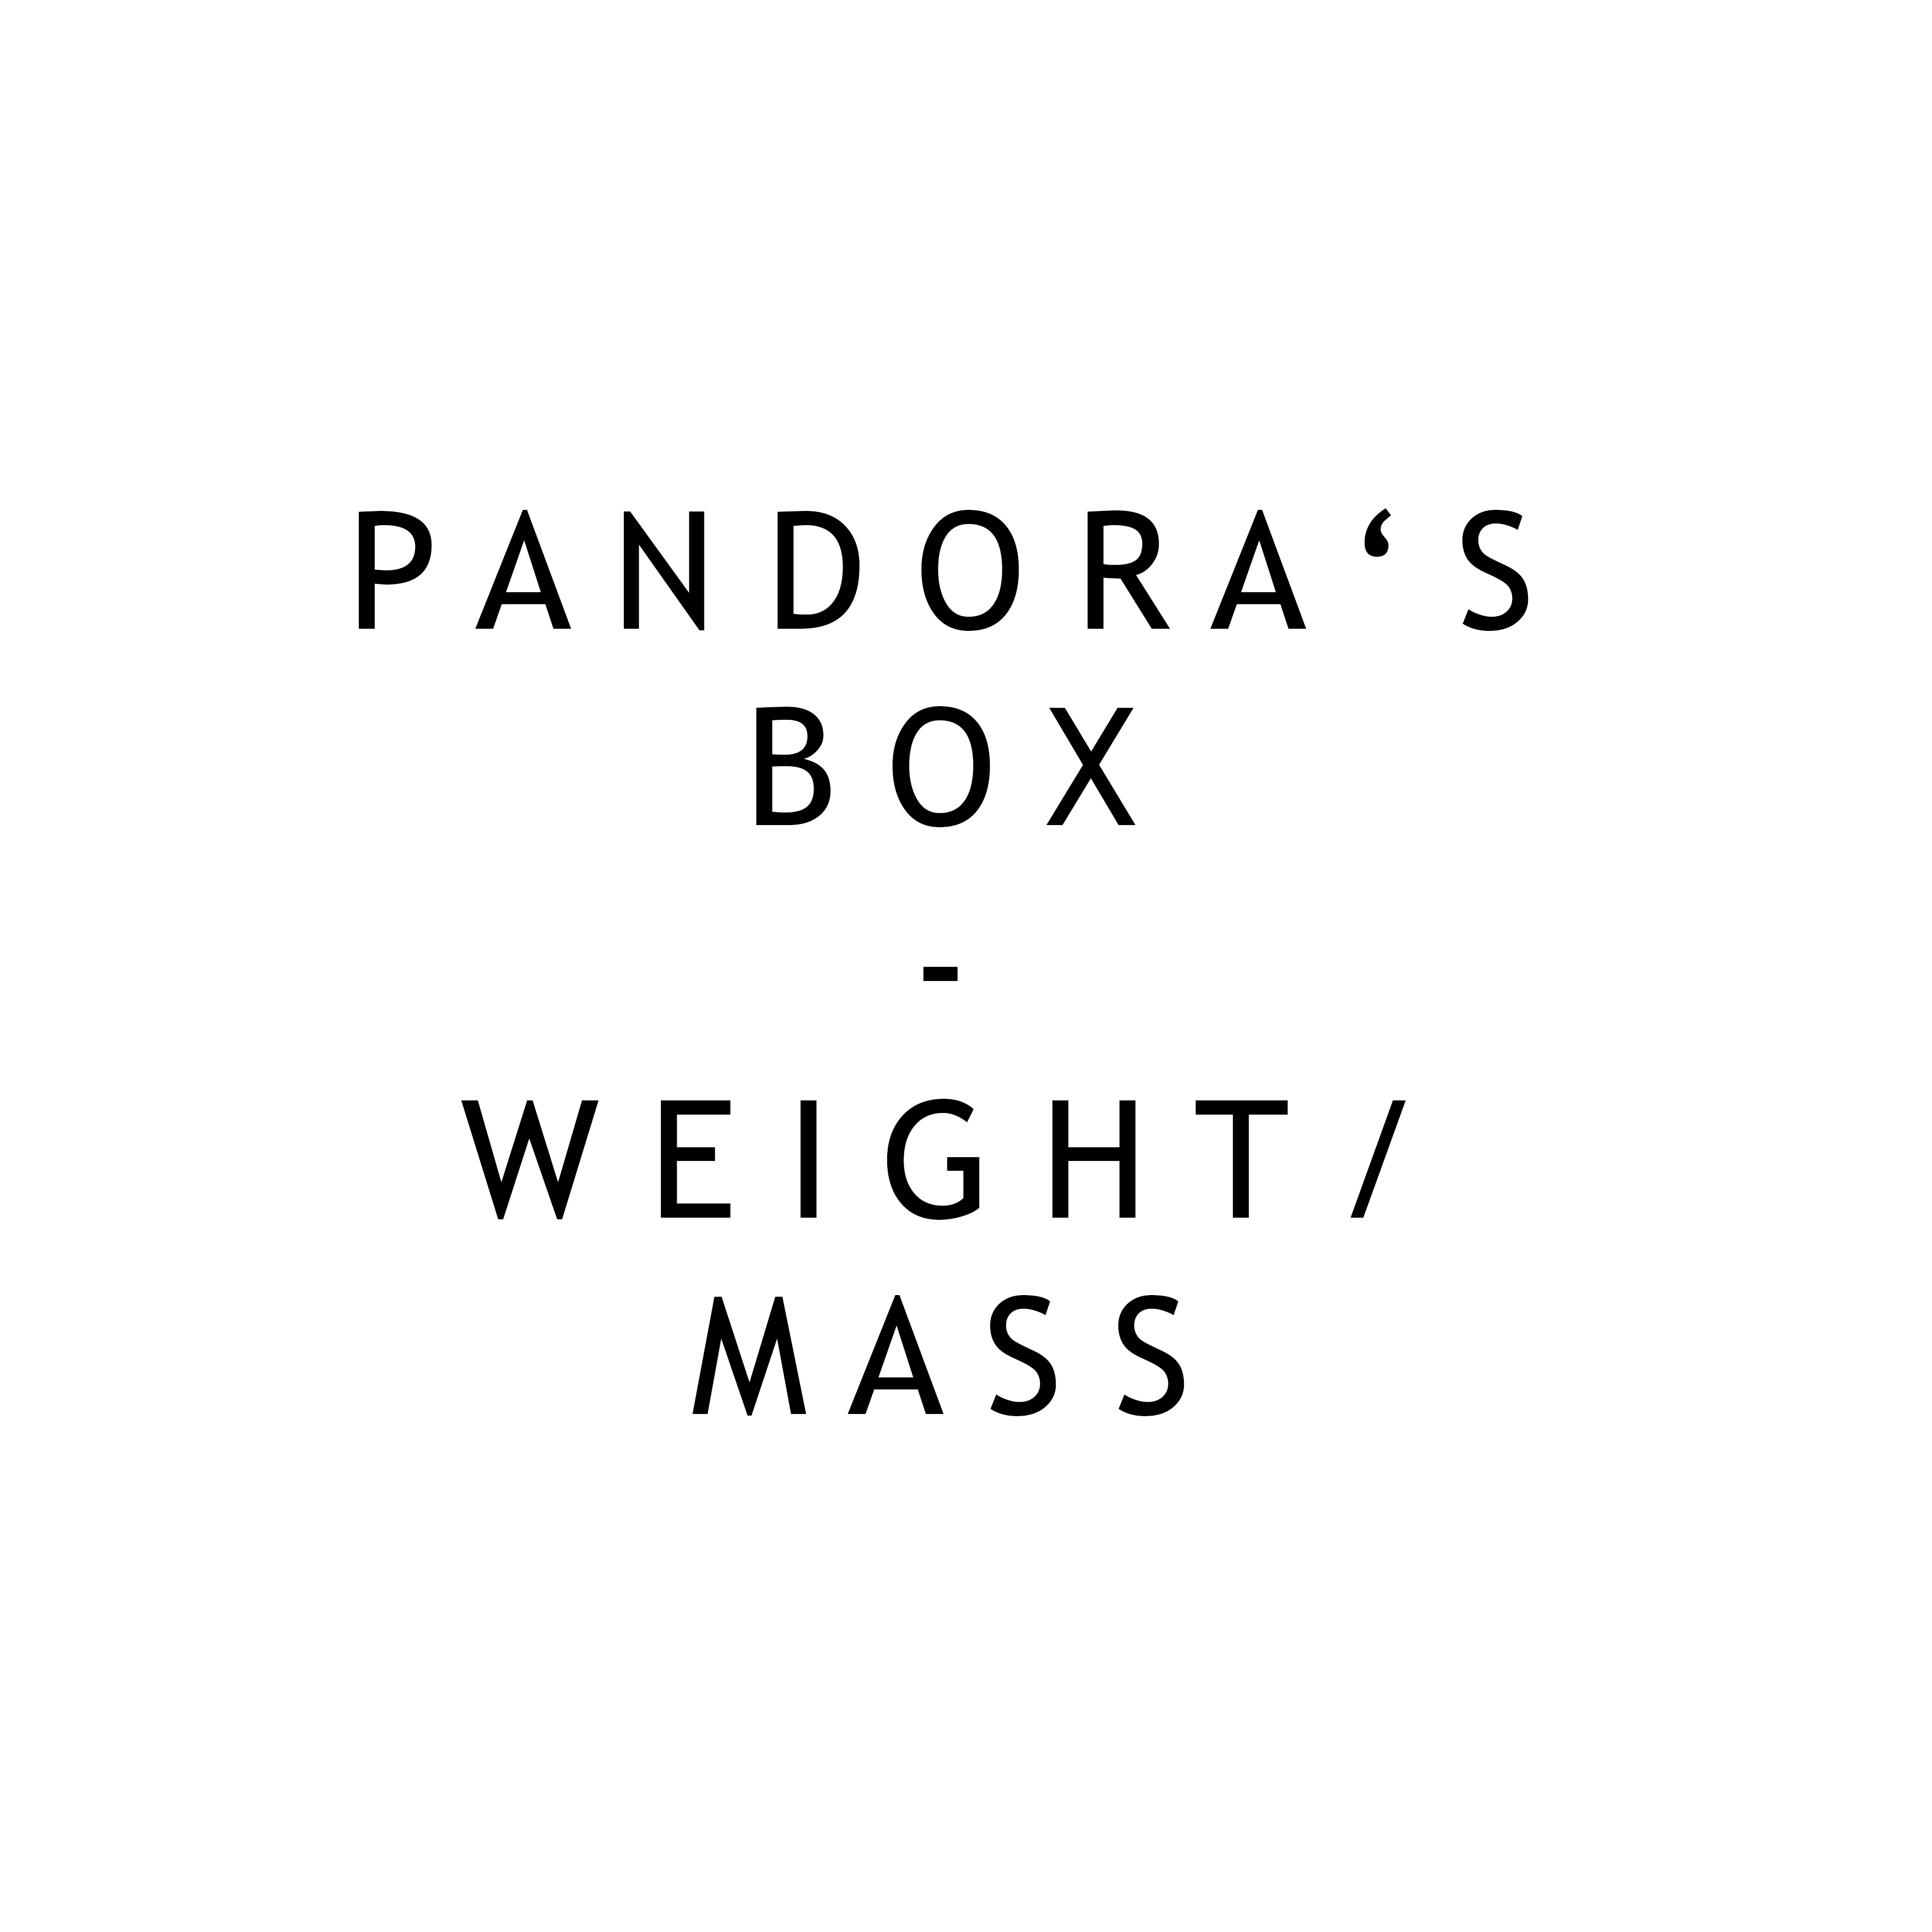 Pandora Box: Previous sketch models and analysis – Weight/Mass